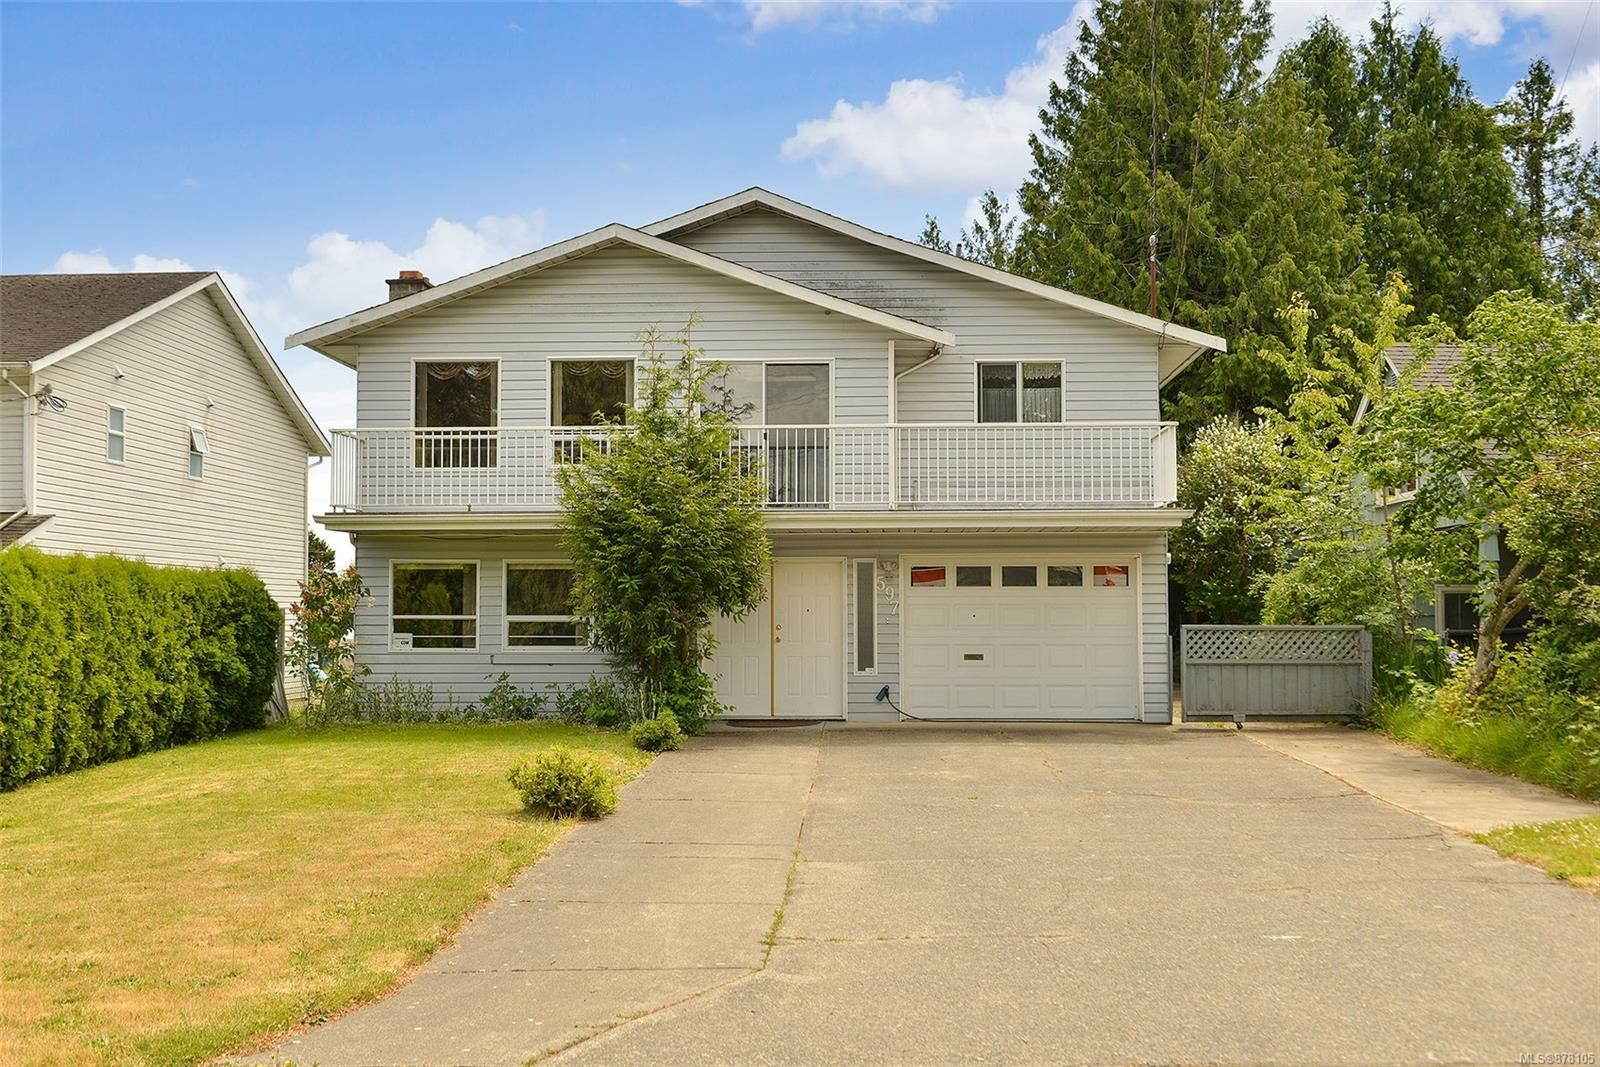 Main Photo: 597 LEASIDE Ave in : SW Glanford House for sale (Saanich West)  : MLS®# 878105